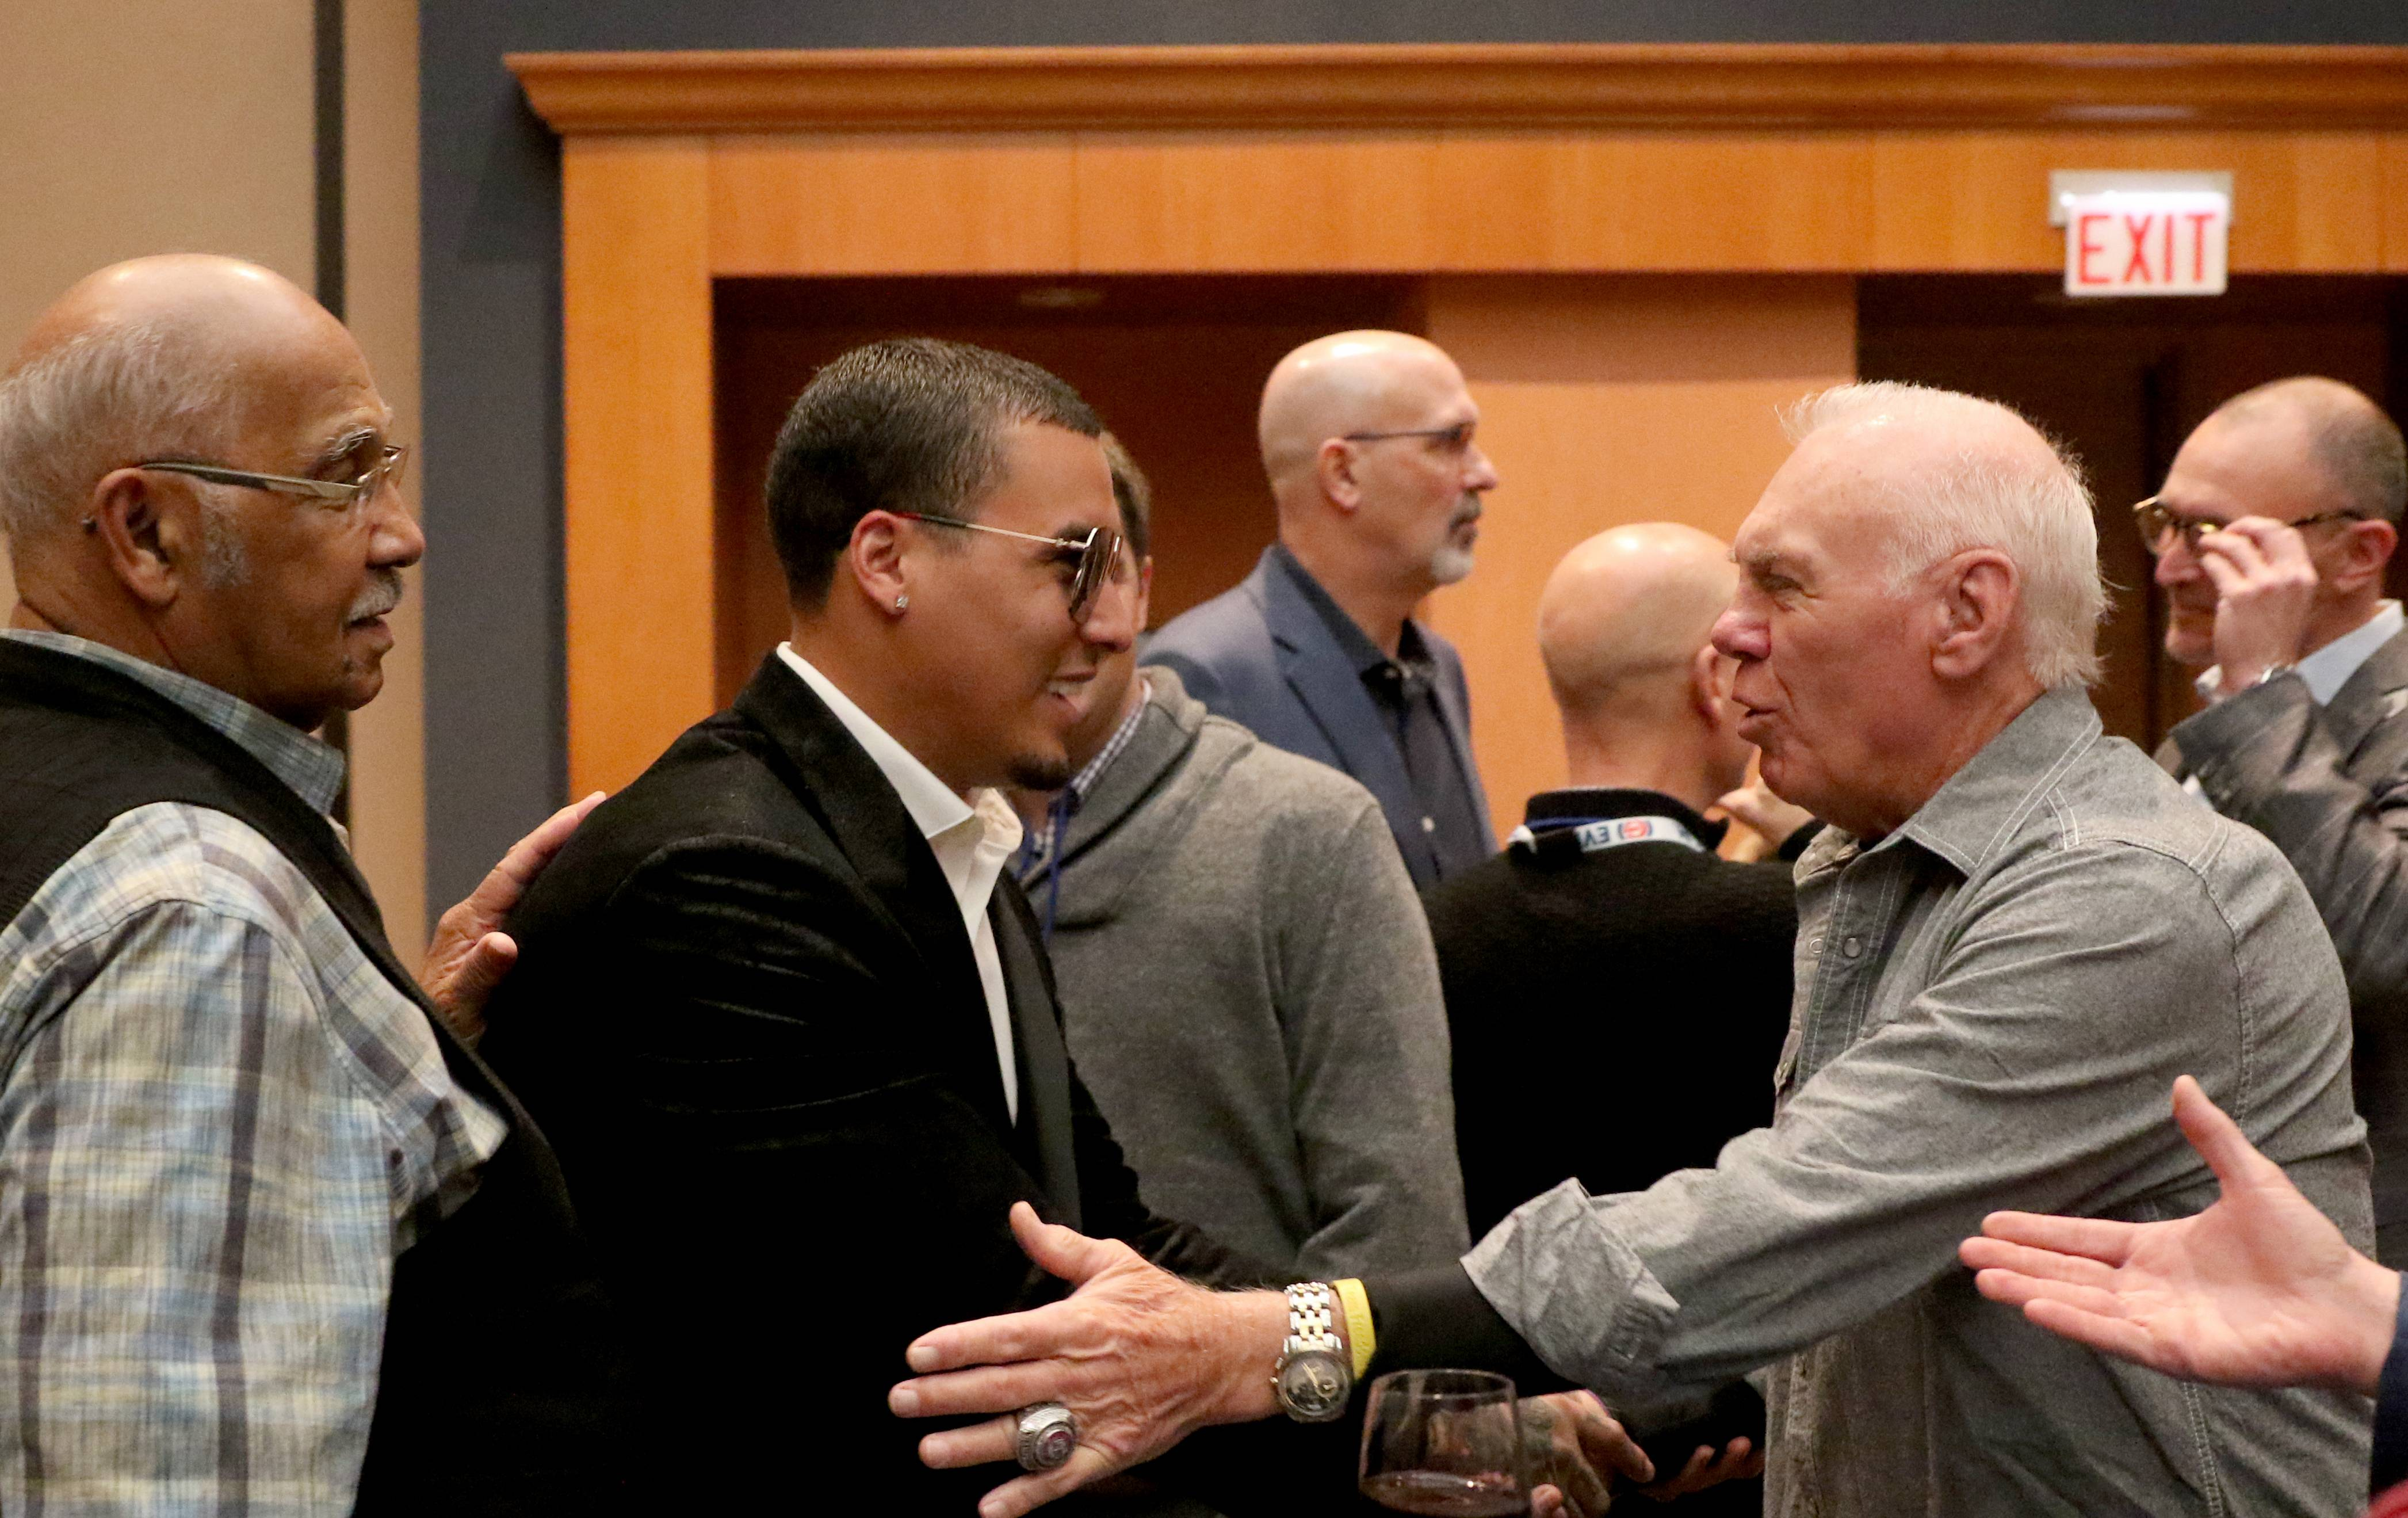 Javier Baez, center, greets former Cubs Billy Williams, left, and Randy Hundley, right, during opening night Friday of the 2019 Chicago Cubs Convention at the Sheraton Grand in Chicago.